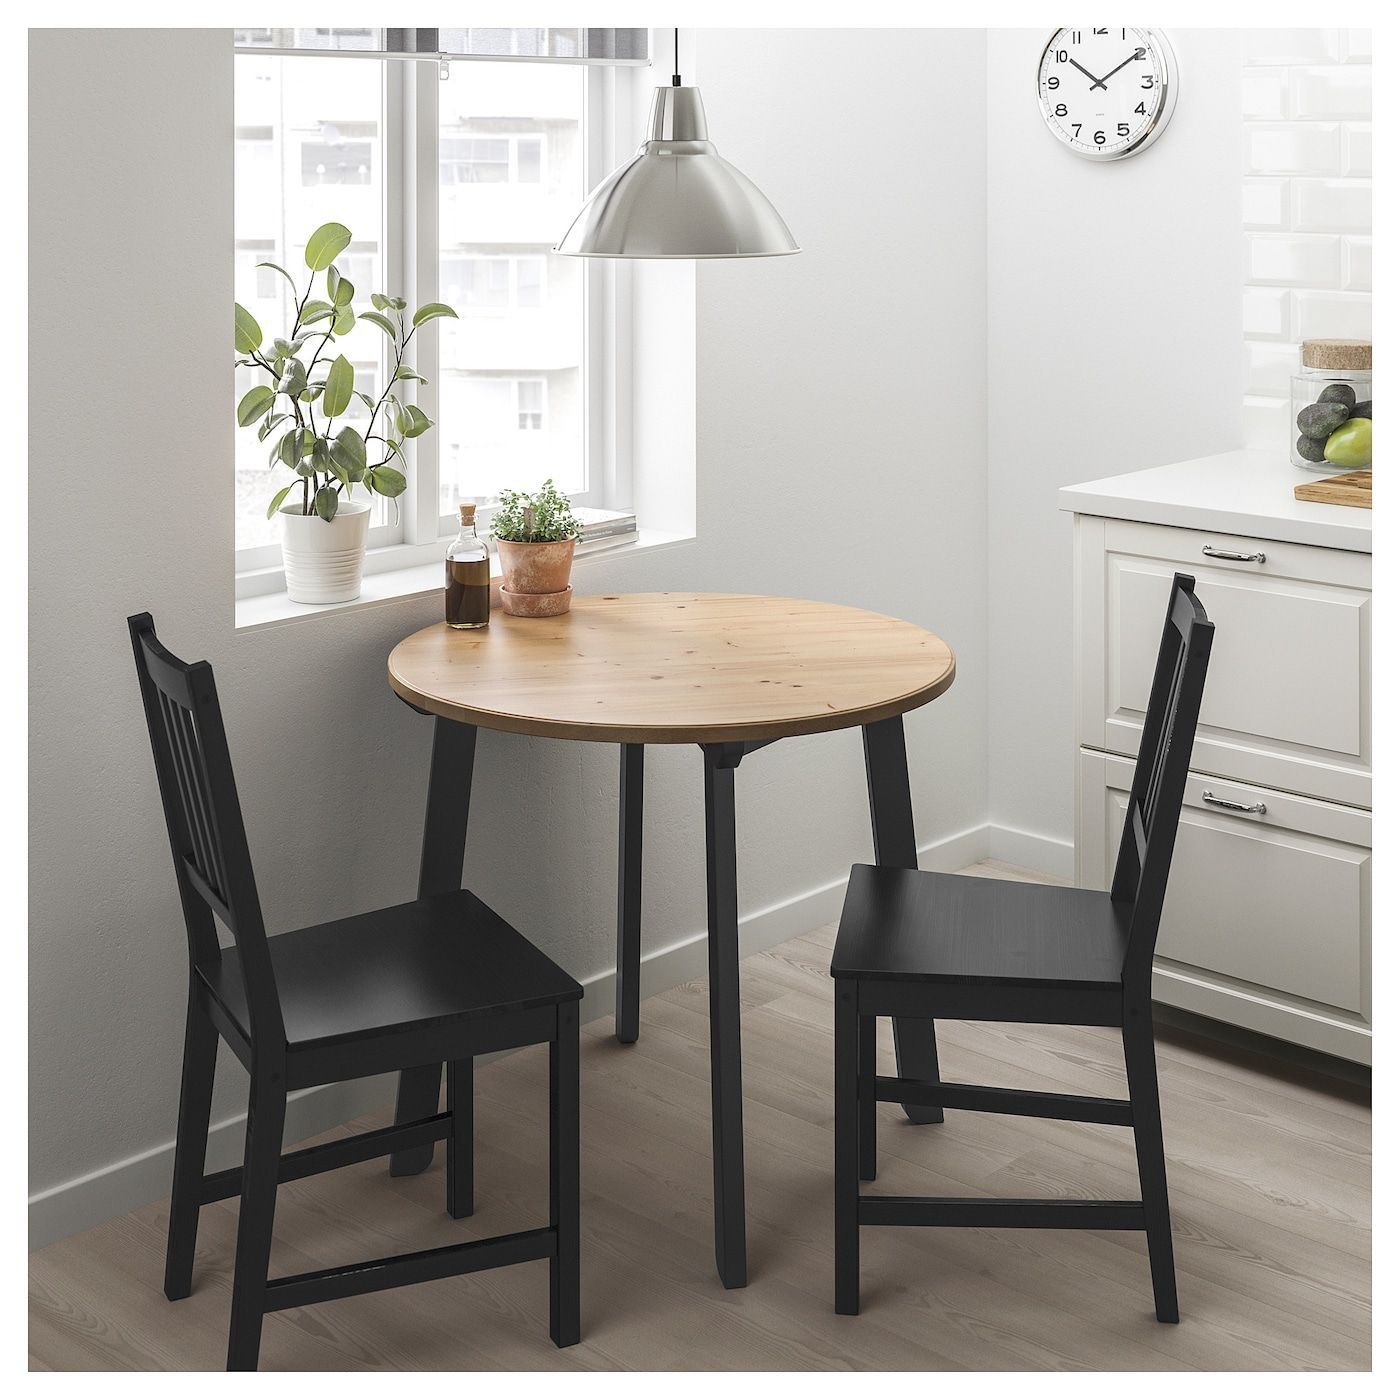 Gamlared Stefan Table And 2 Chairs Light Antique Stain Brown Black Ikea Dining Room Small Small Kitchen Tables Small Dining Table